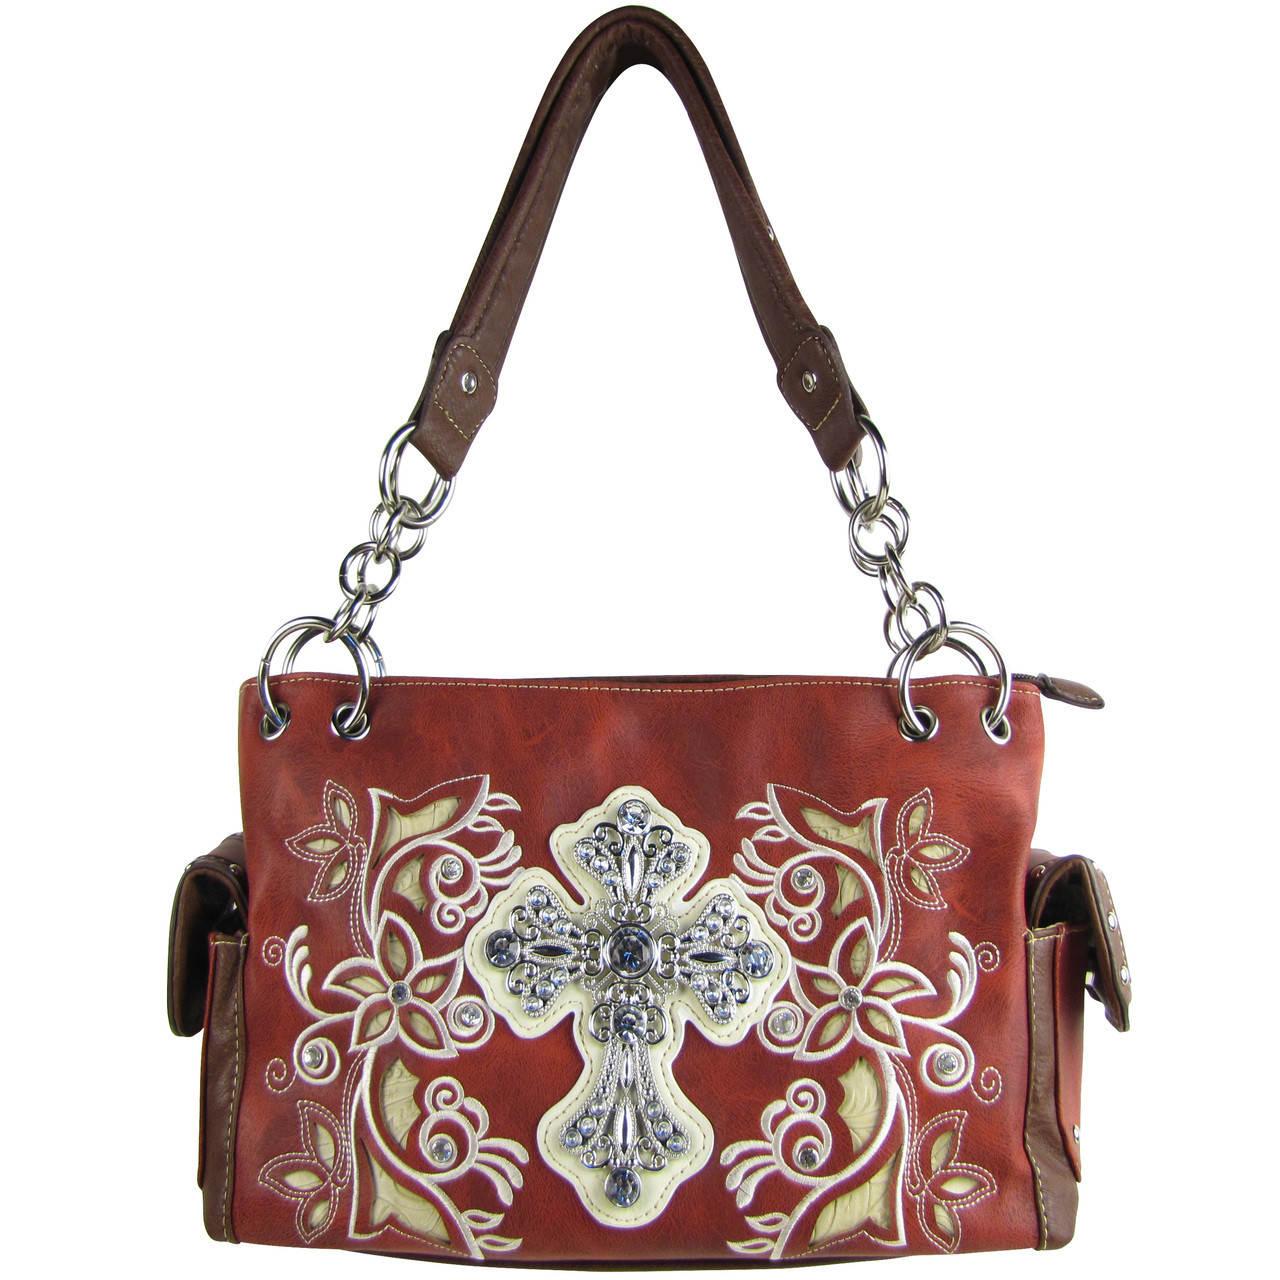 RED FLOWER RHINESTONE CROSS LOOK SHOULDER HANDBAG HB1-84LCRRED